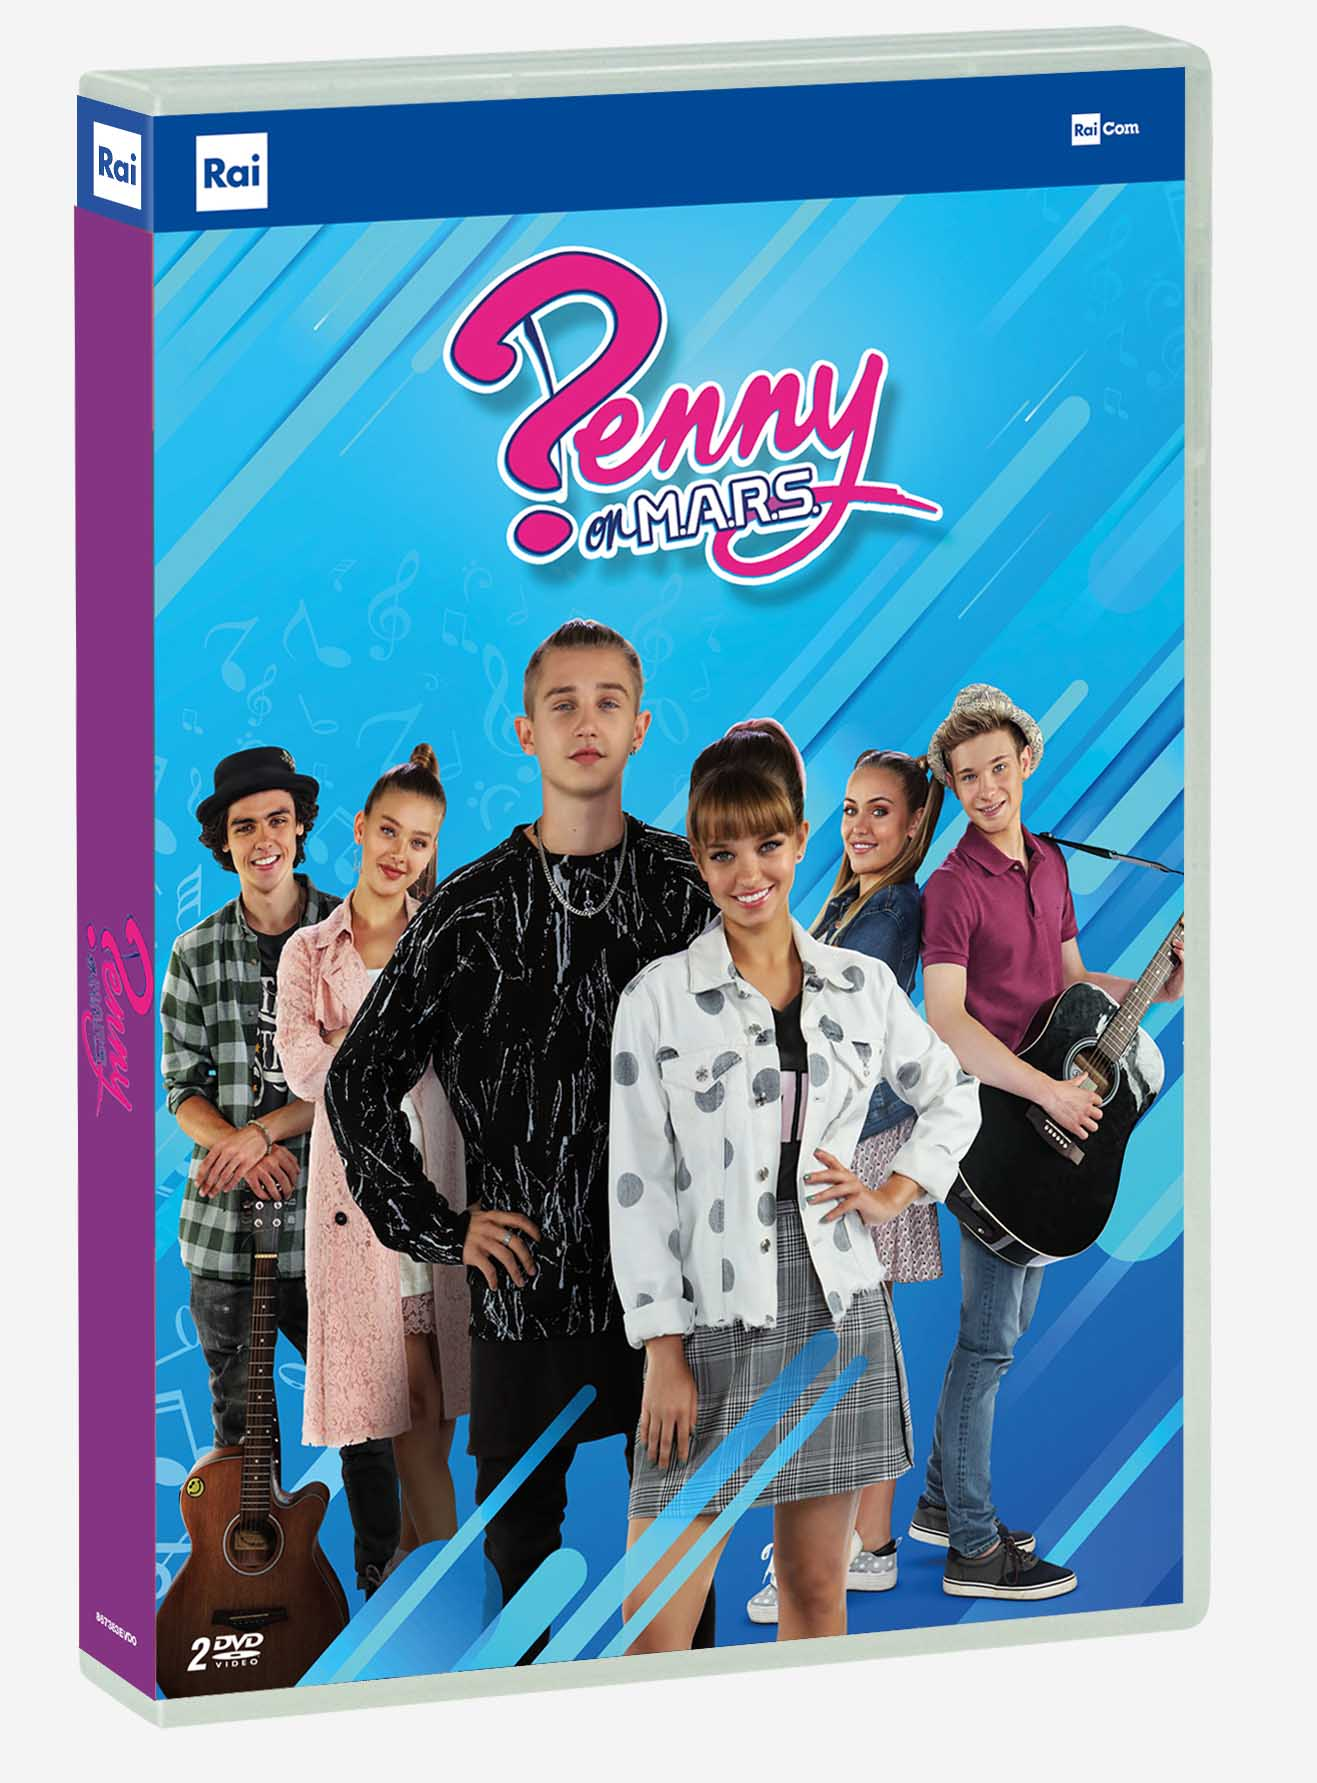 COF.PENNY ON M.A.R.S. 2 (2 DVD) (DVD)